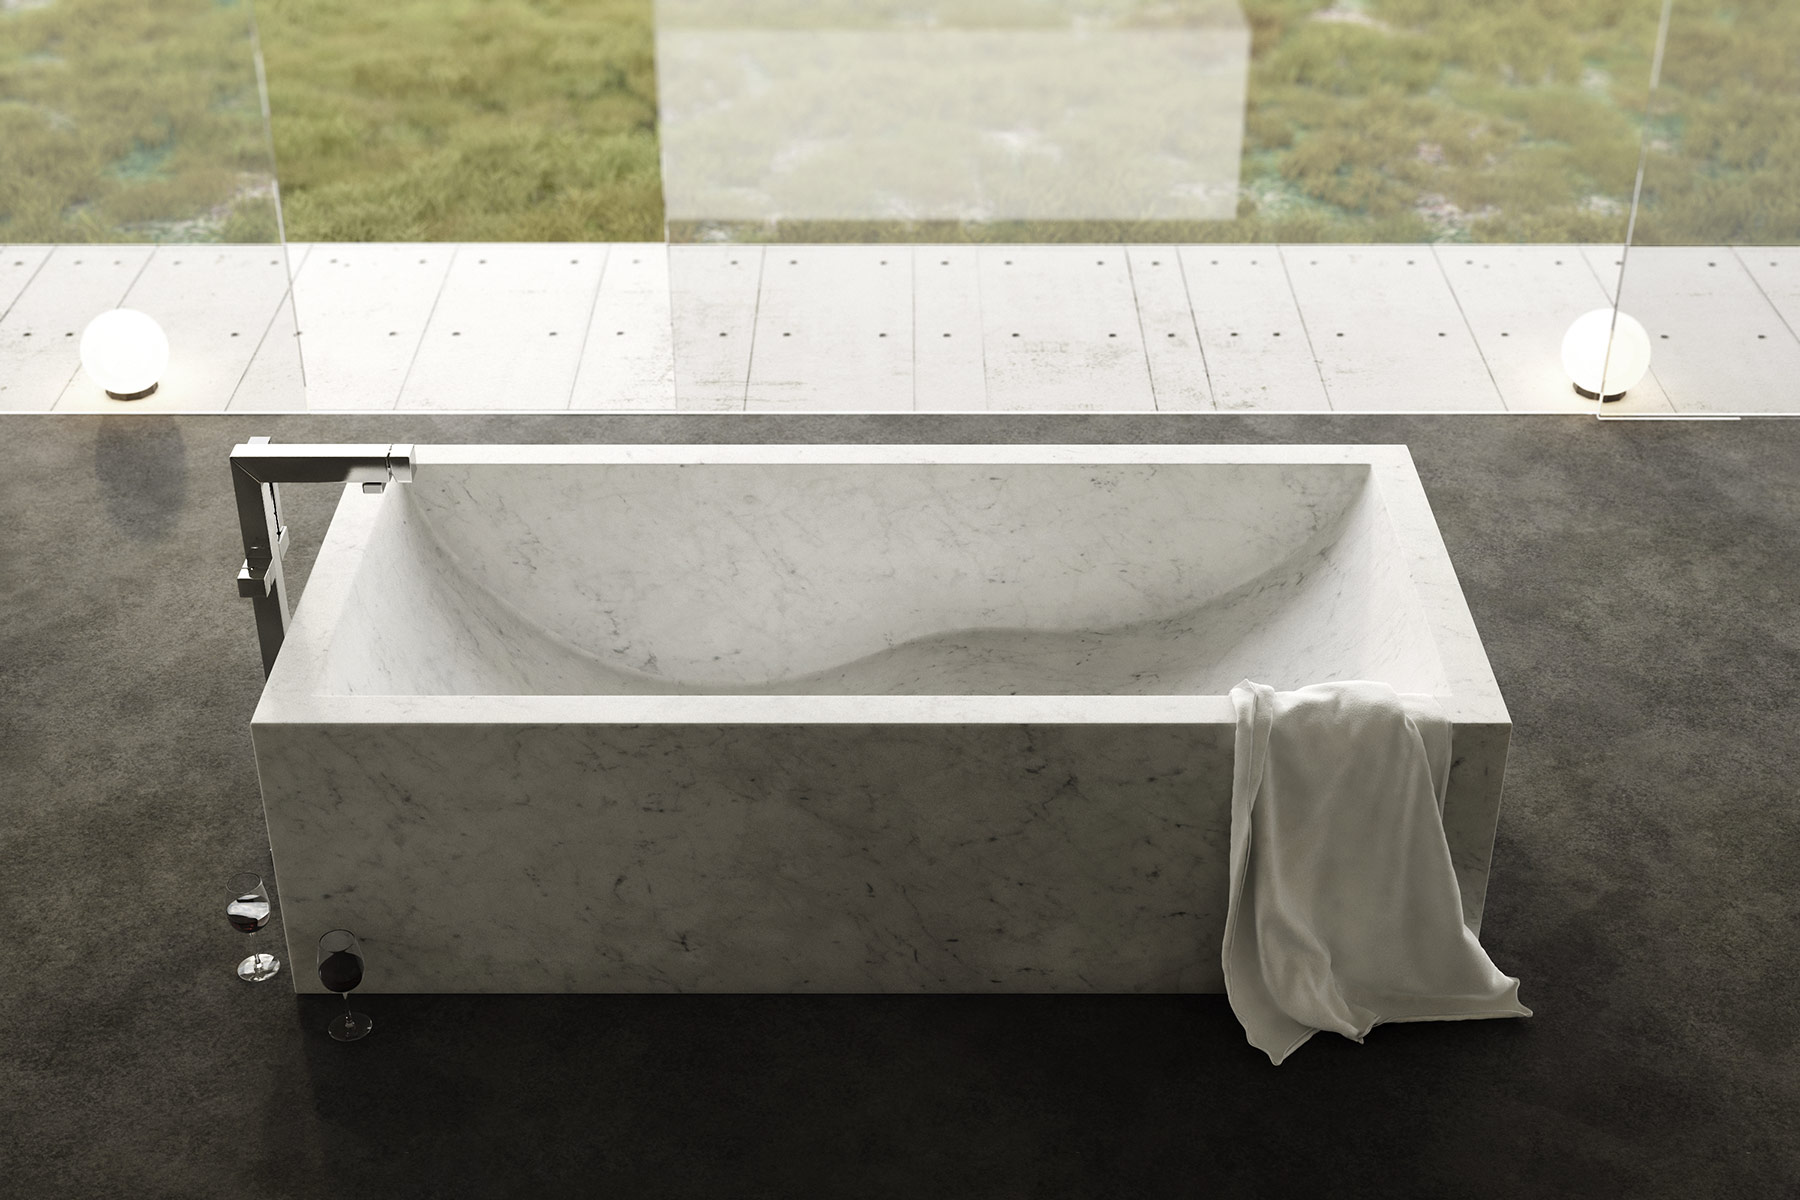 Contemporary Onda Freestanding Bathtub